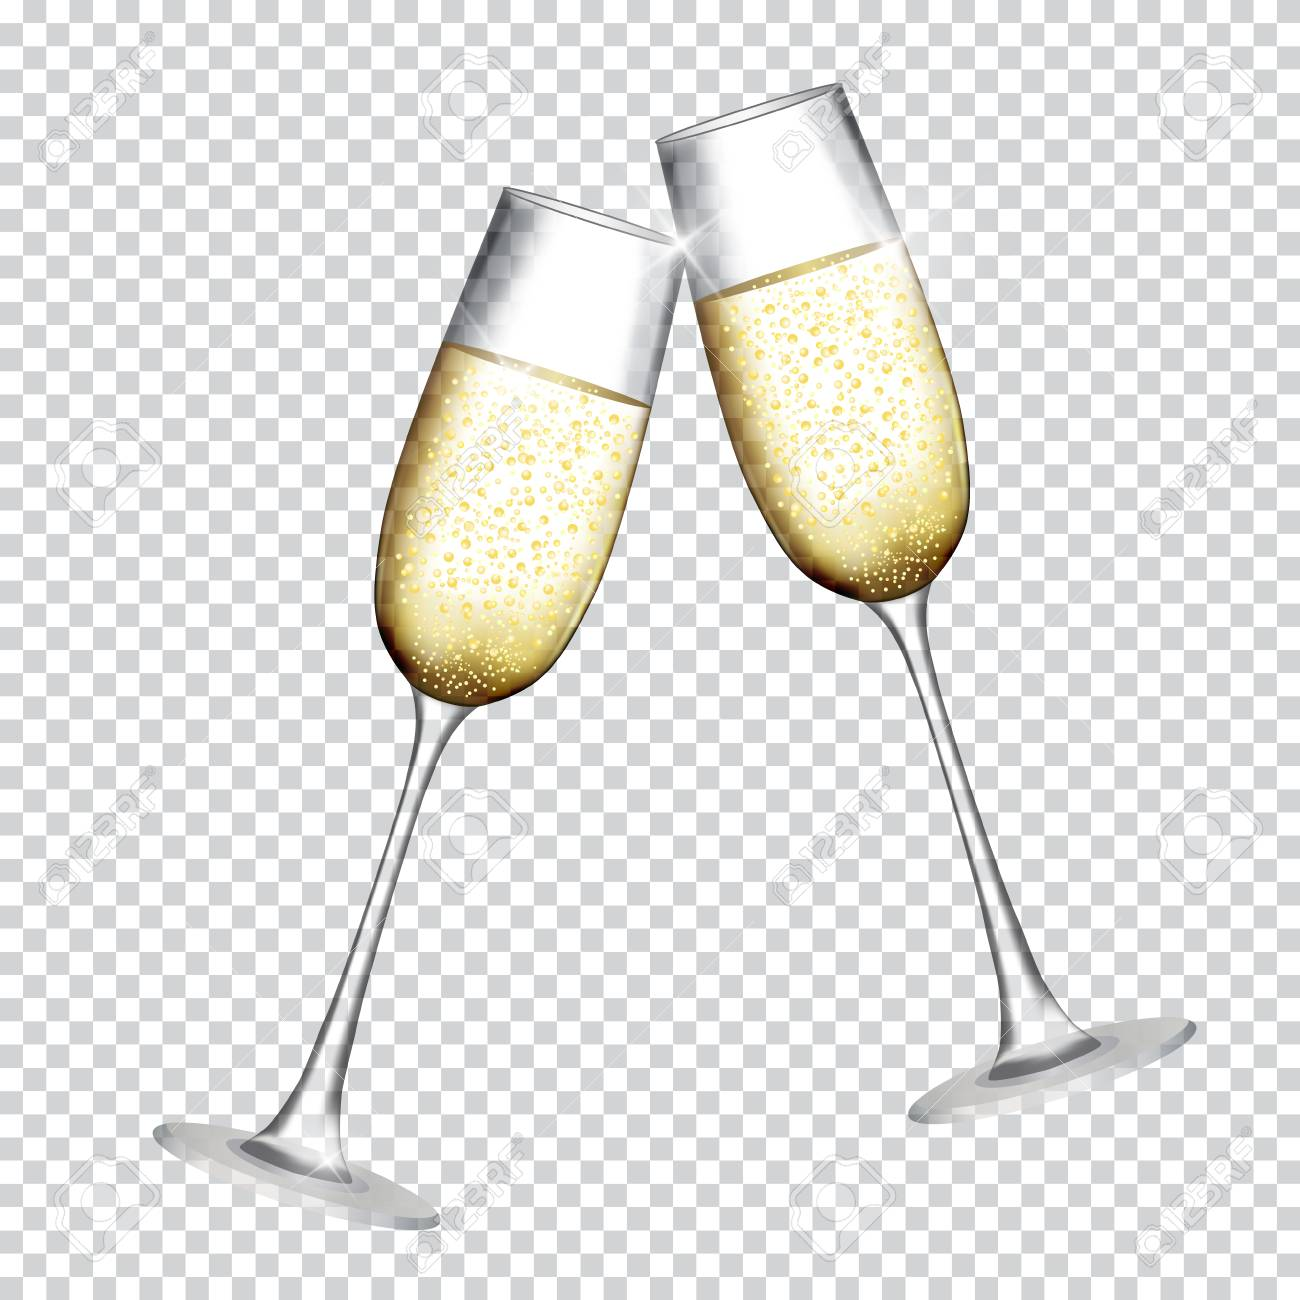 Two Glass of Champagne Isolated on Transparent Background. Vector  Illustration Stock Vector - 87534326